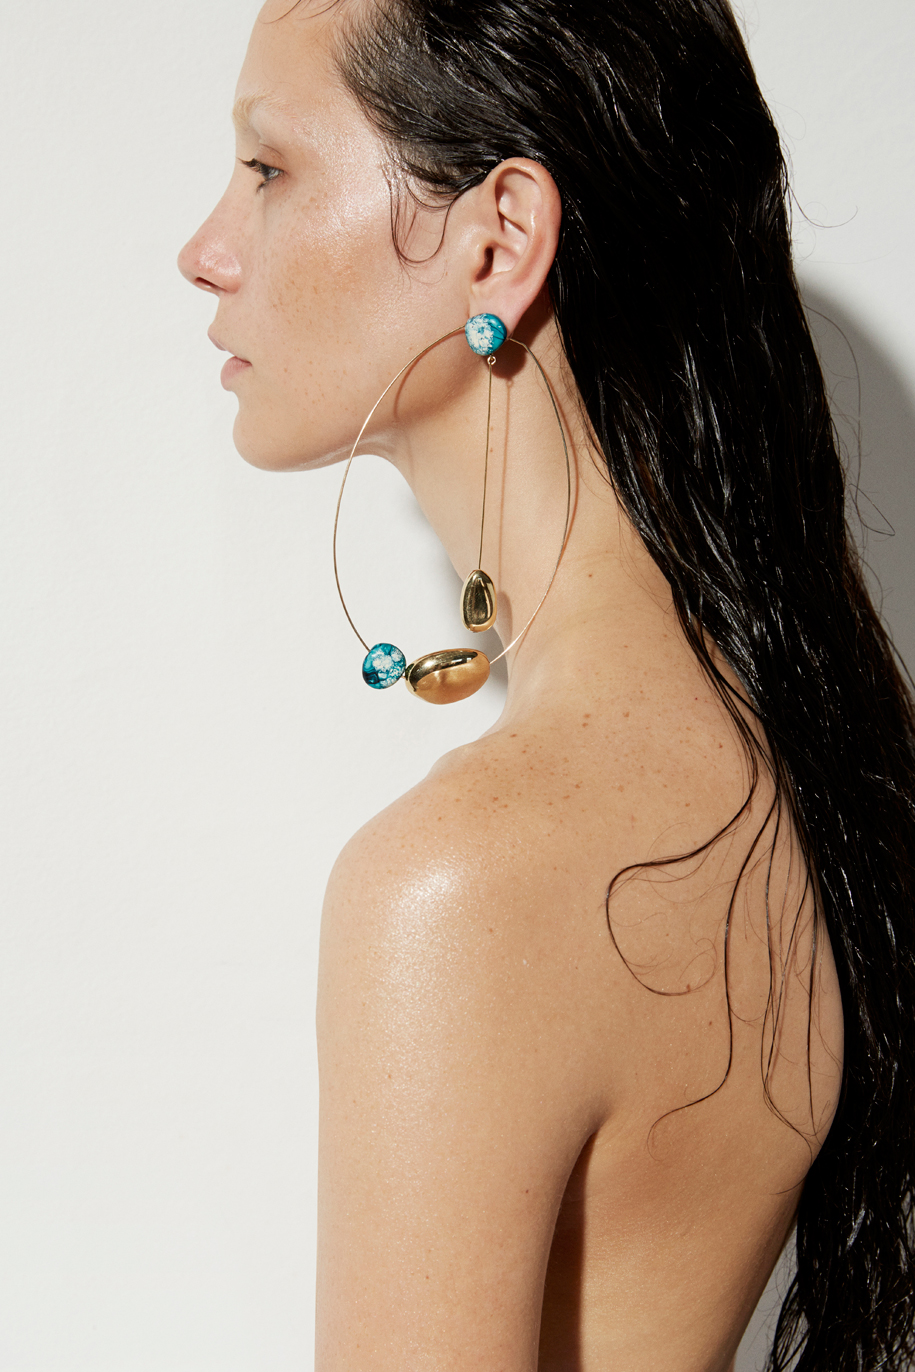 dinosaur_designs_rainforest_olsen_ormandy_bart_celestino_jewellery_earrings_pebble_hoop_drop